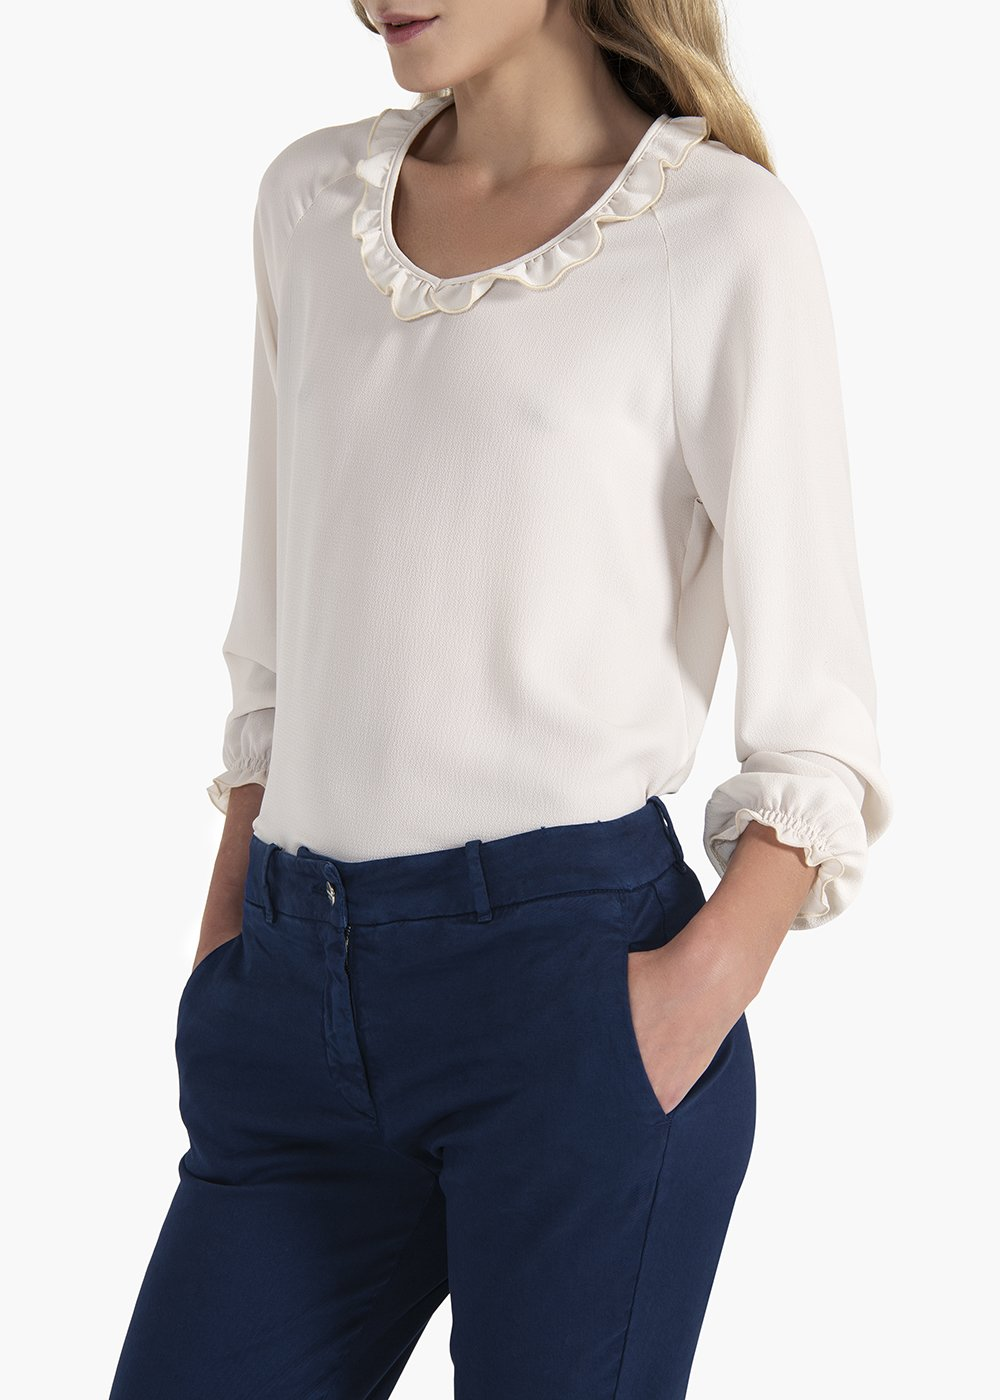 Sabina T-shirt with round neckline and rouches - Grey - Woman